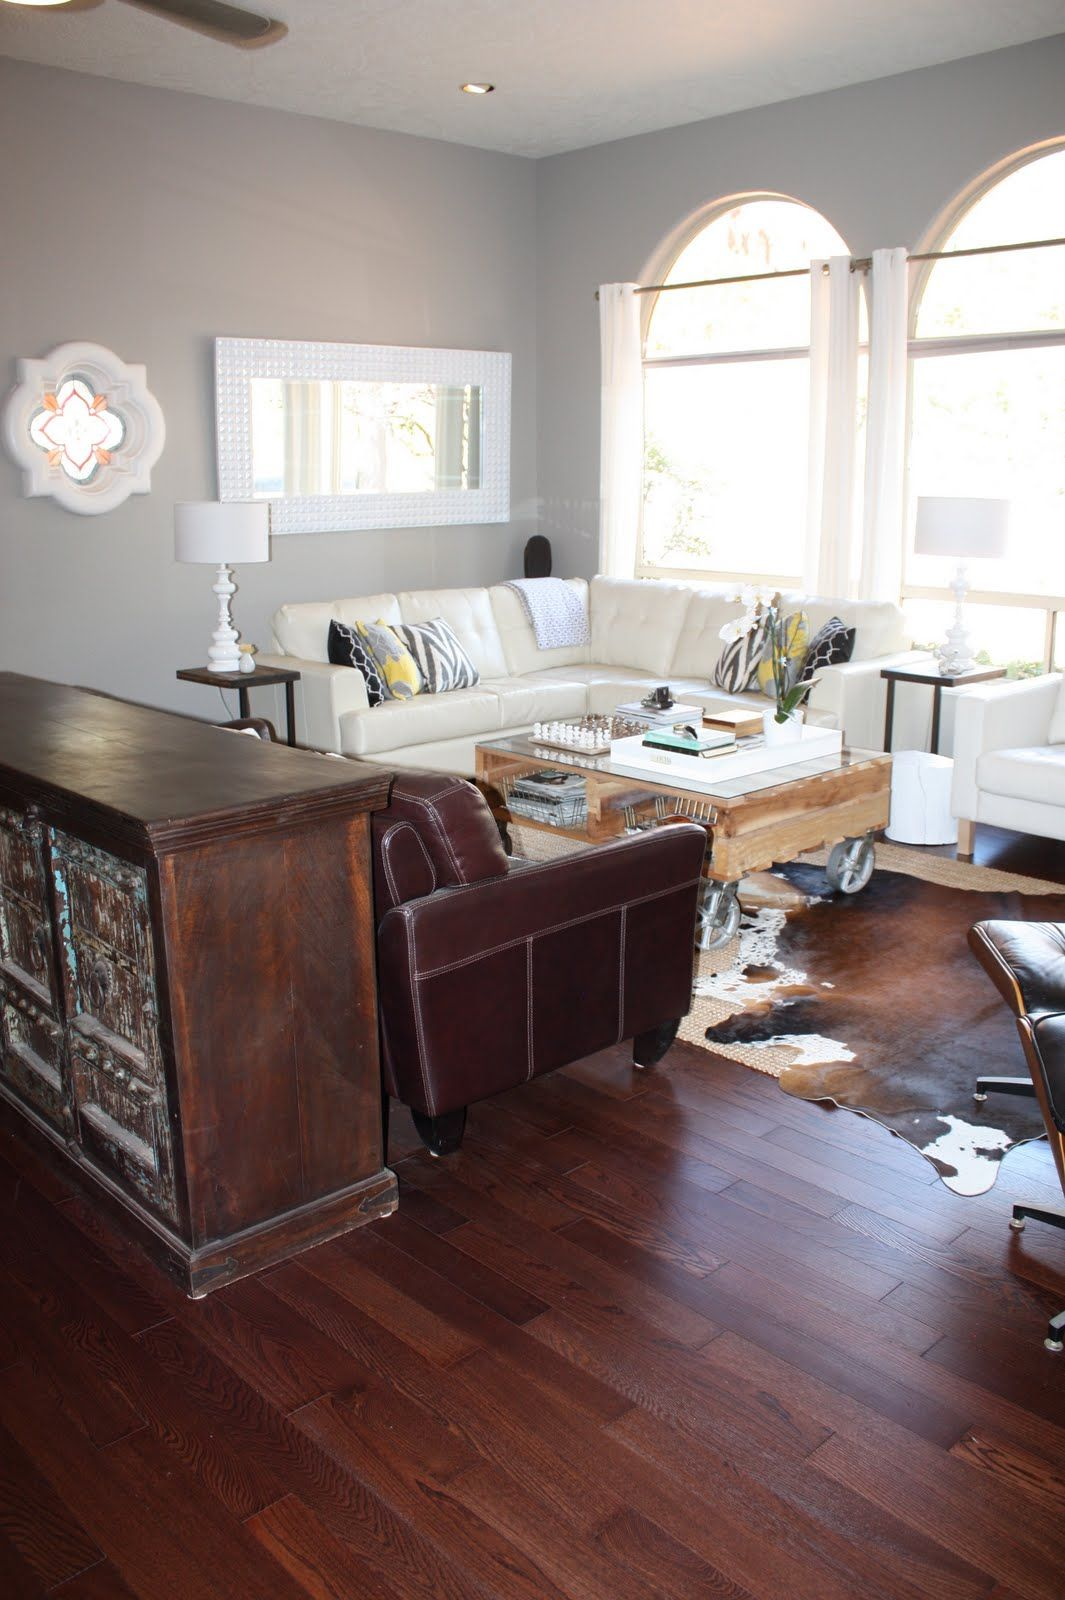 Design Stocker Our Home Brown Living Room Small Base